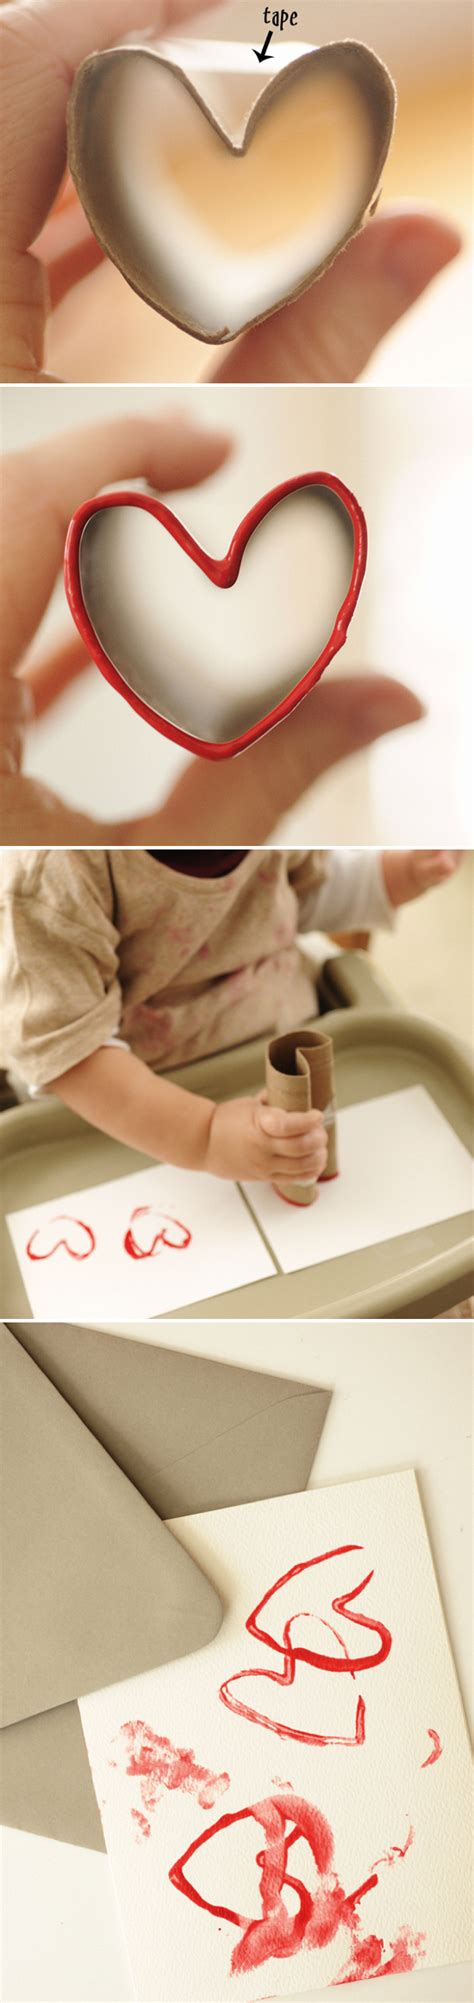 Easy Toilet Paper Roll Crafts - toilet paper roll crafts kubby invitations ideas